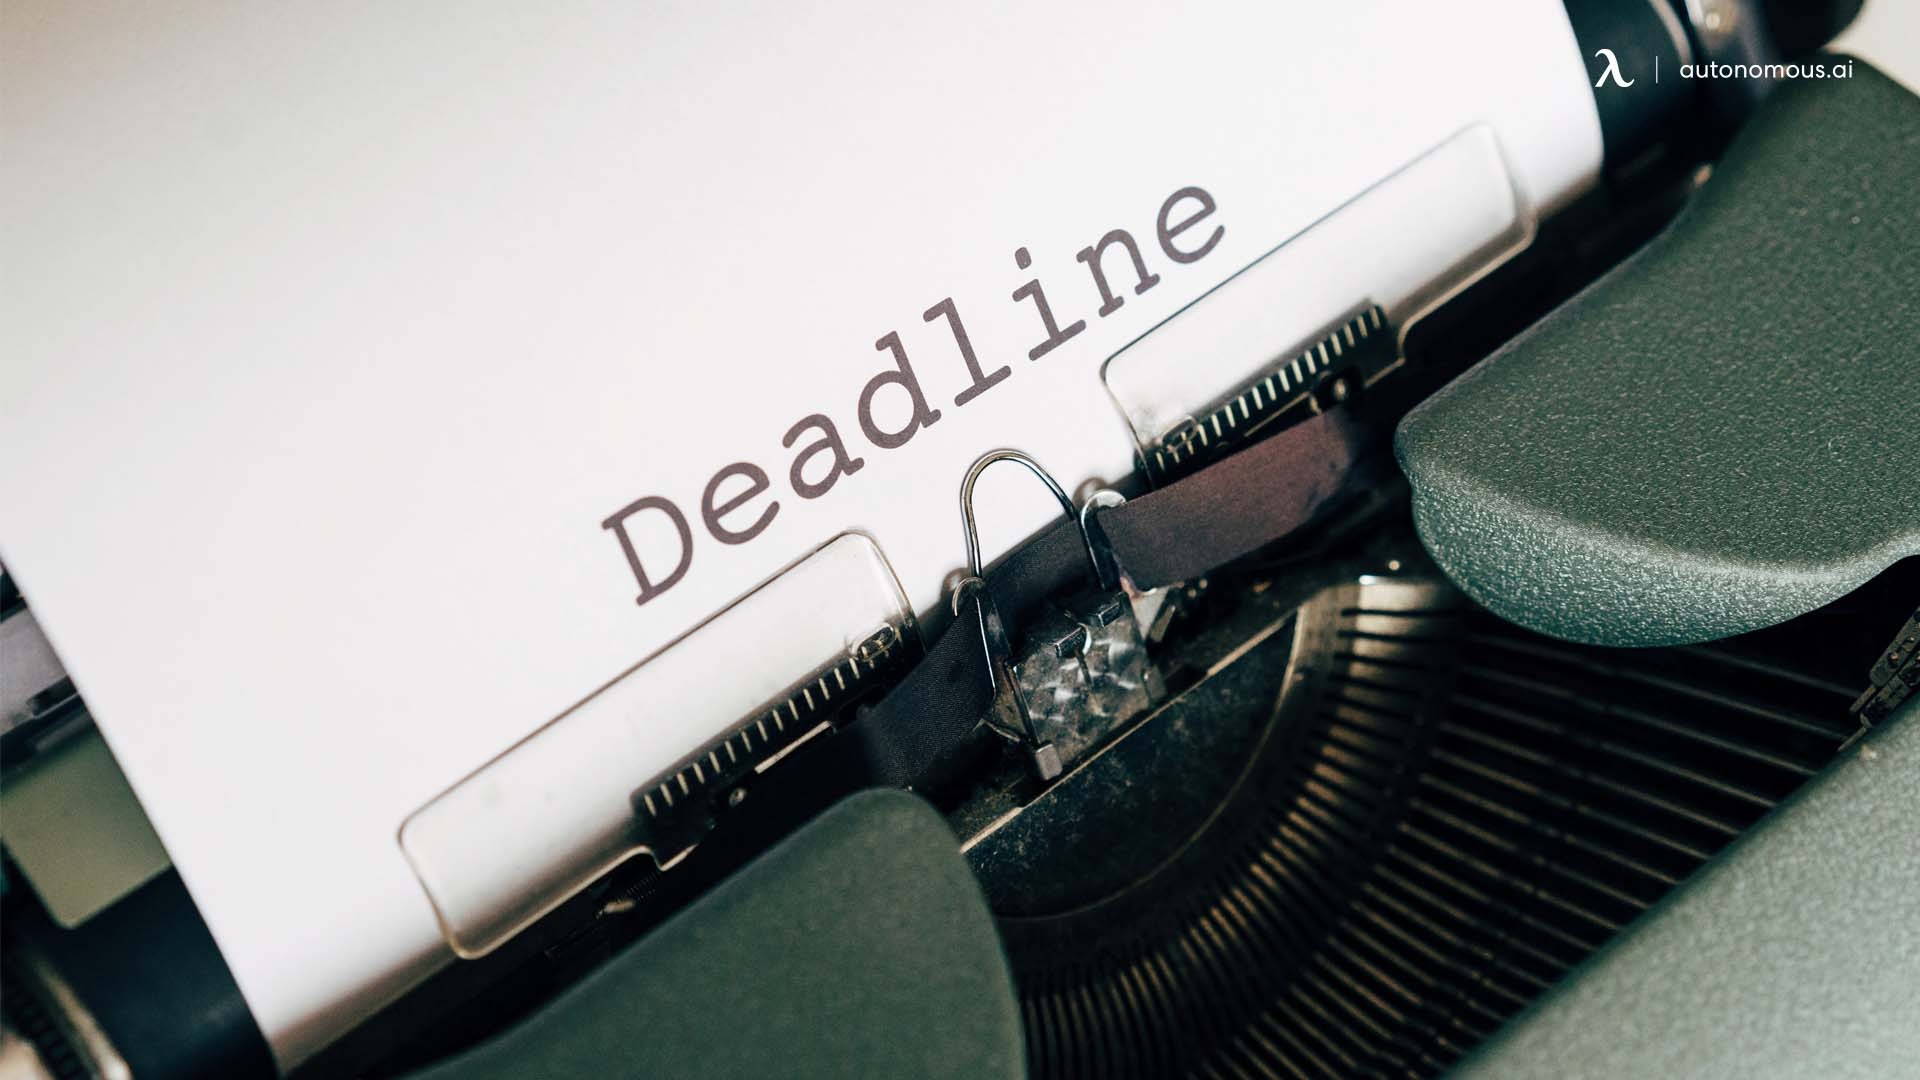 Measure objectives with deadlines